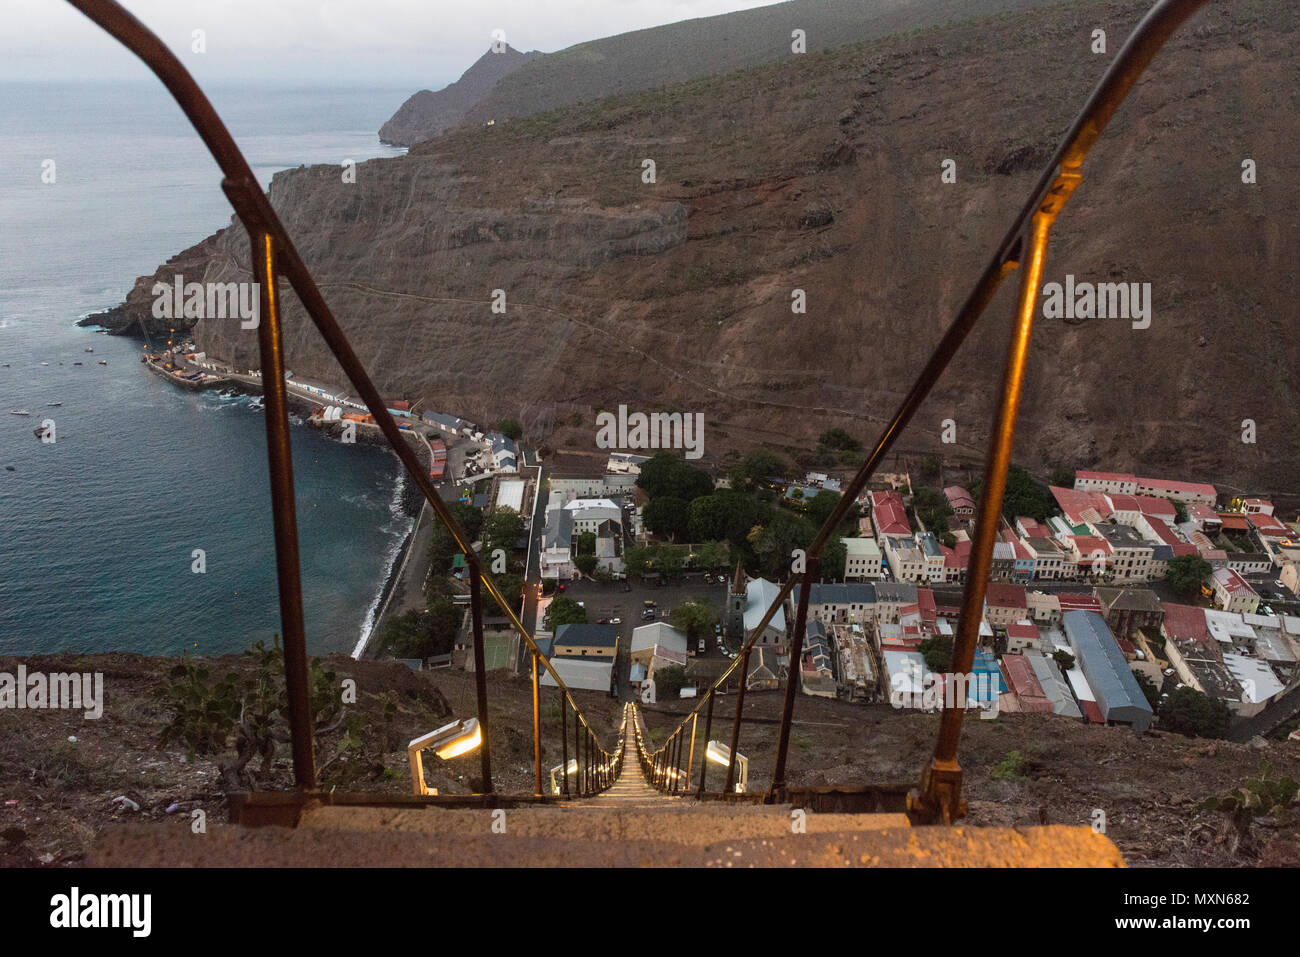 View down the 699 steps of Jacob's Ladder which climb up Ladder Hill from Jamestown, seen in the background at dusk. Ladder Hill, St Helena - Stock Image